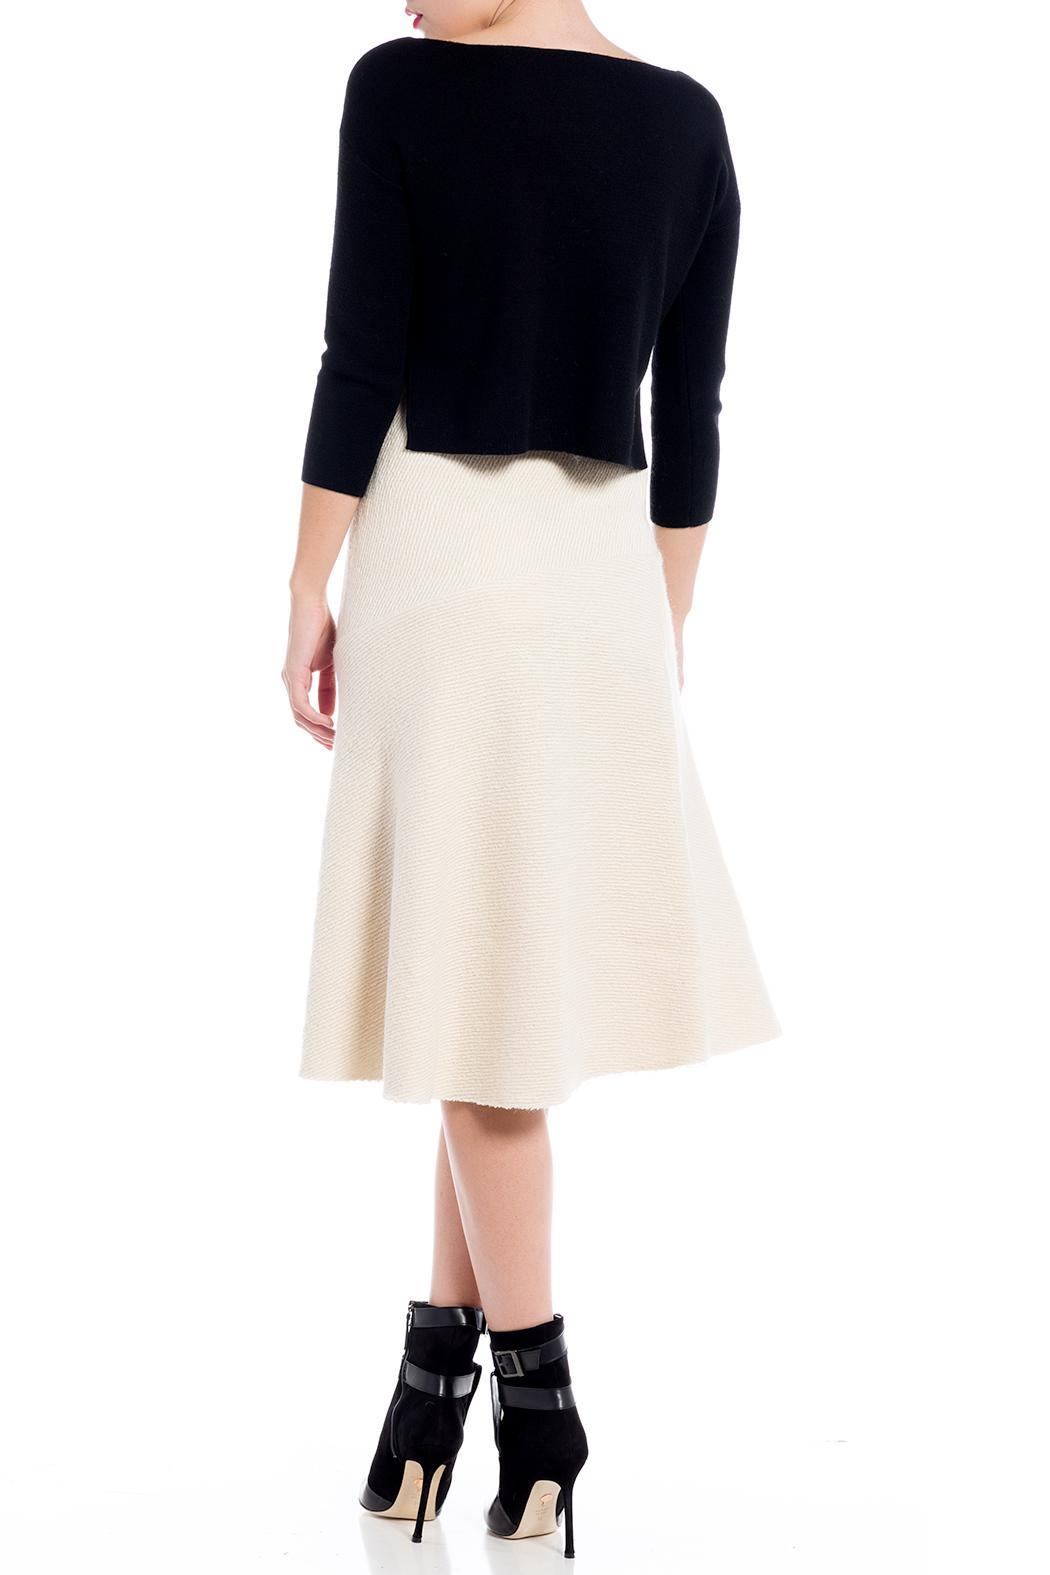 Charlie May Bias Cut Skirt - Side Cropped Image